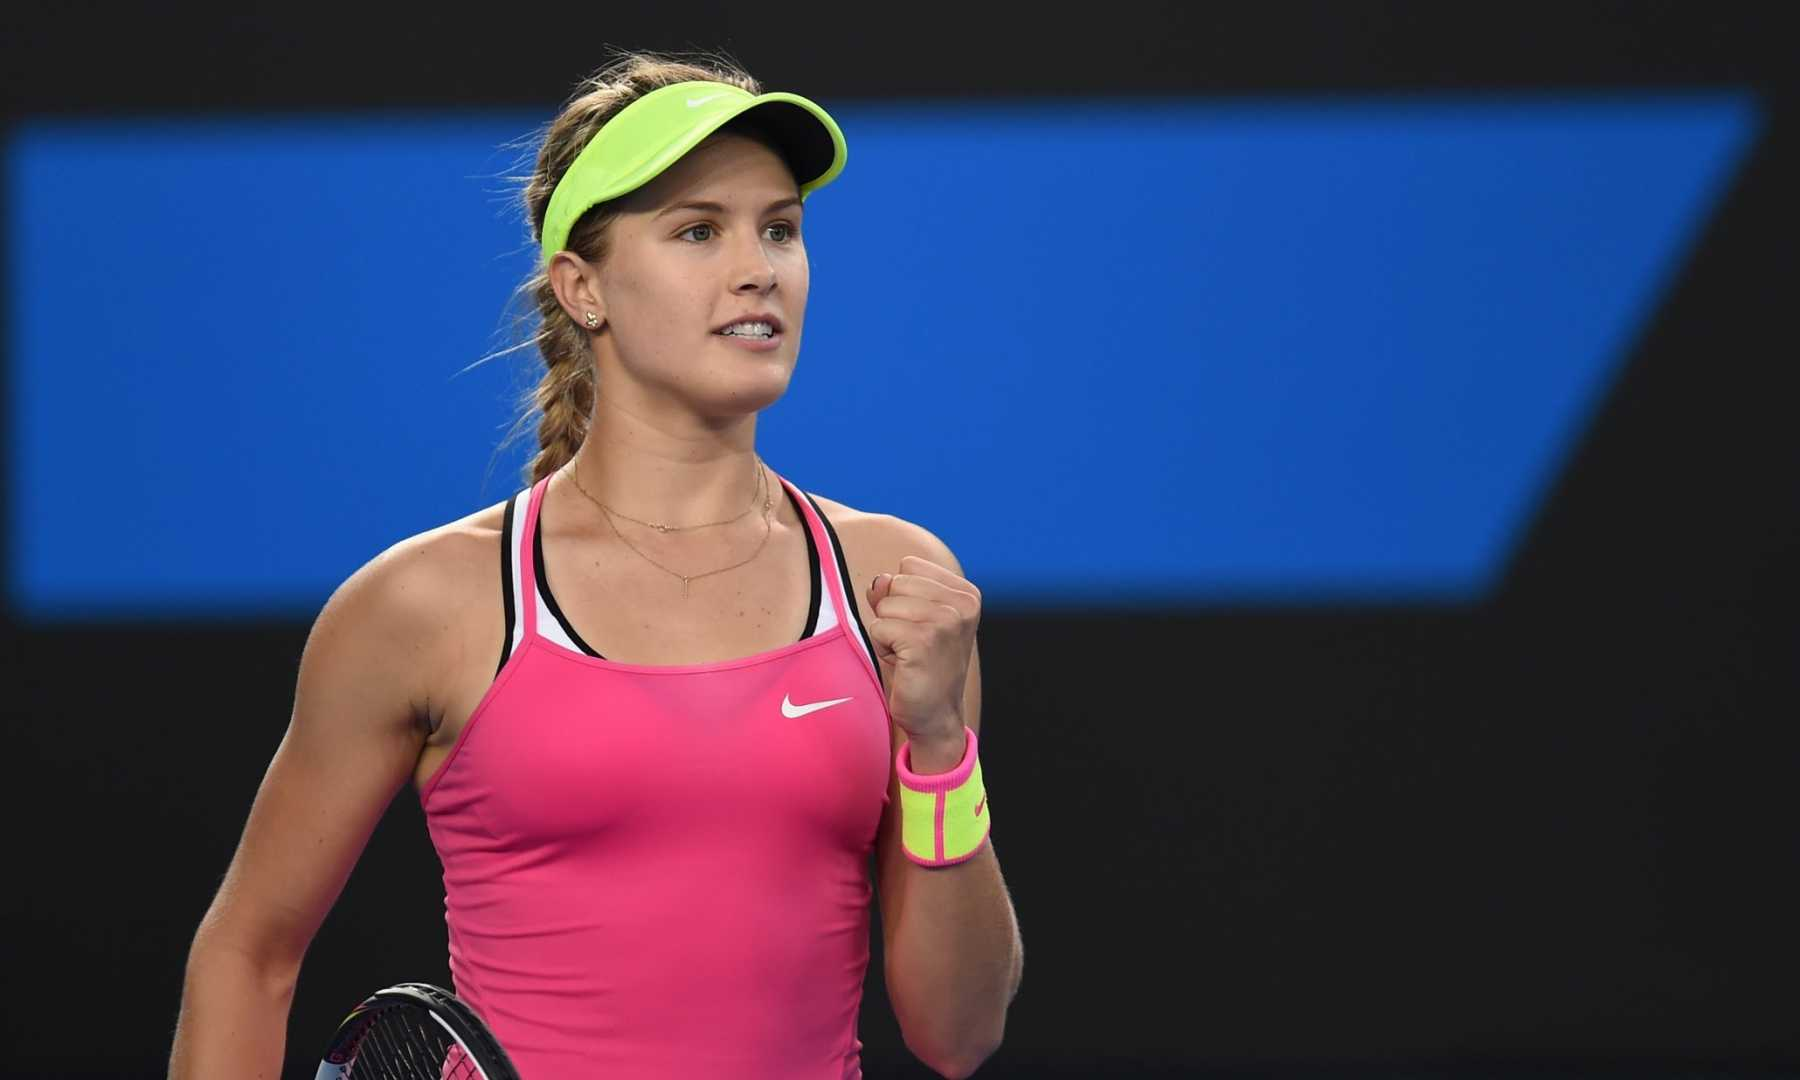 Eugenie Bouchard photos